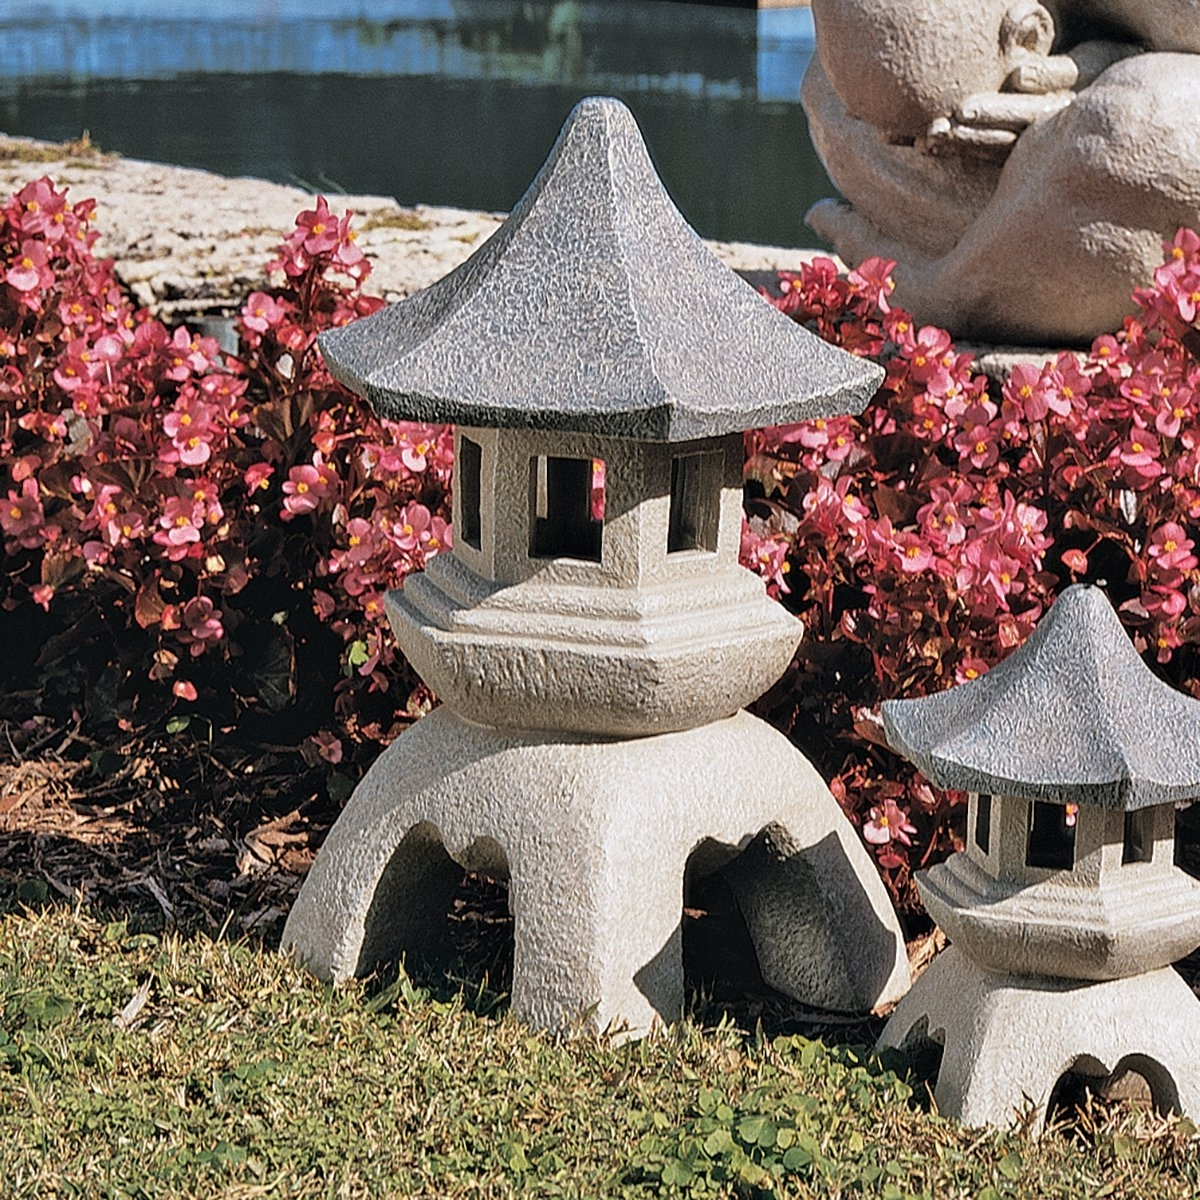 Outdoor Japanese Lanterns For Sale Within Best And Newest 4 Cheap Outdoor Japanese Garden Lanterns For Sale – Homelilys Decor (View 12 of 20)